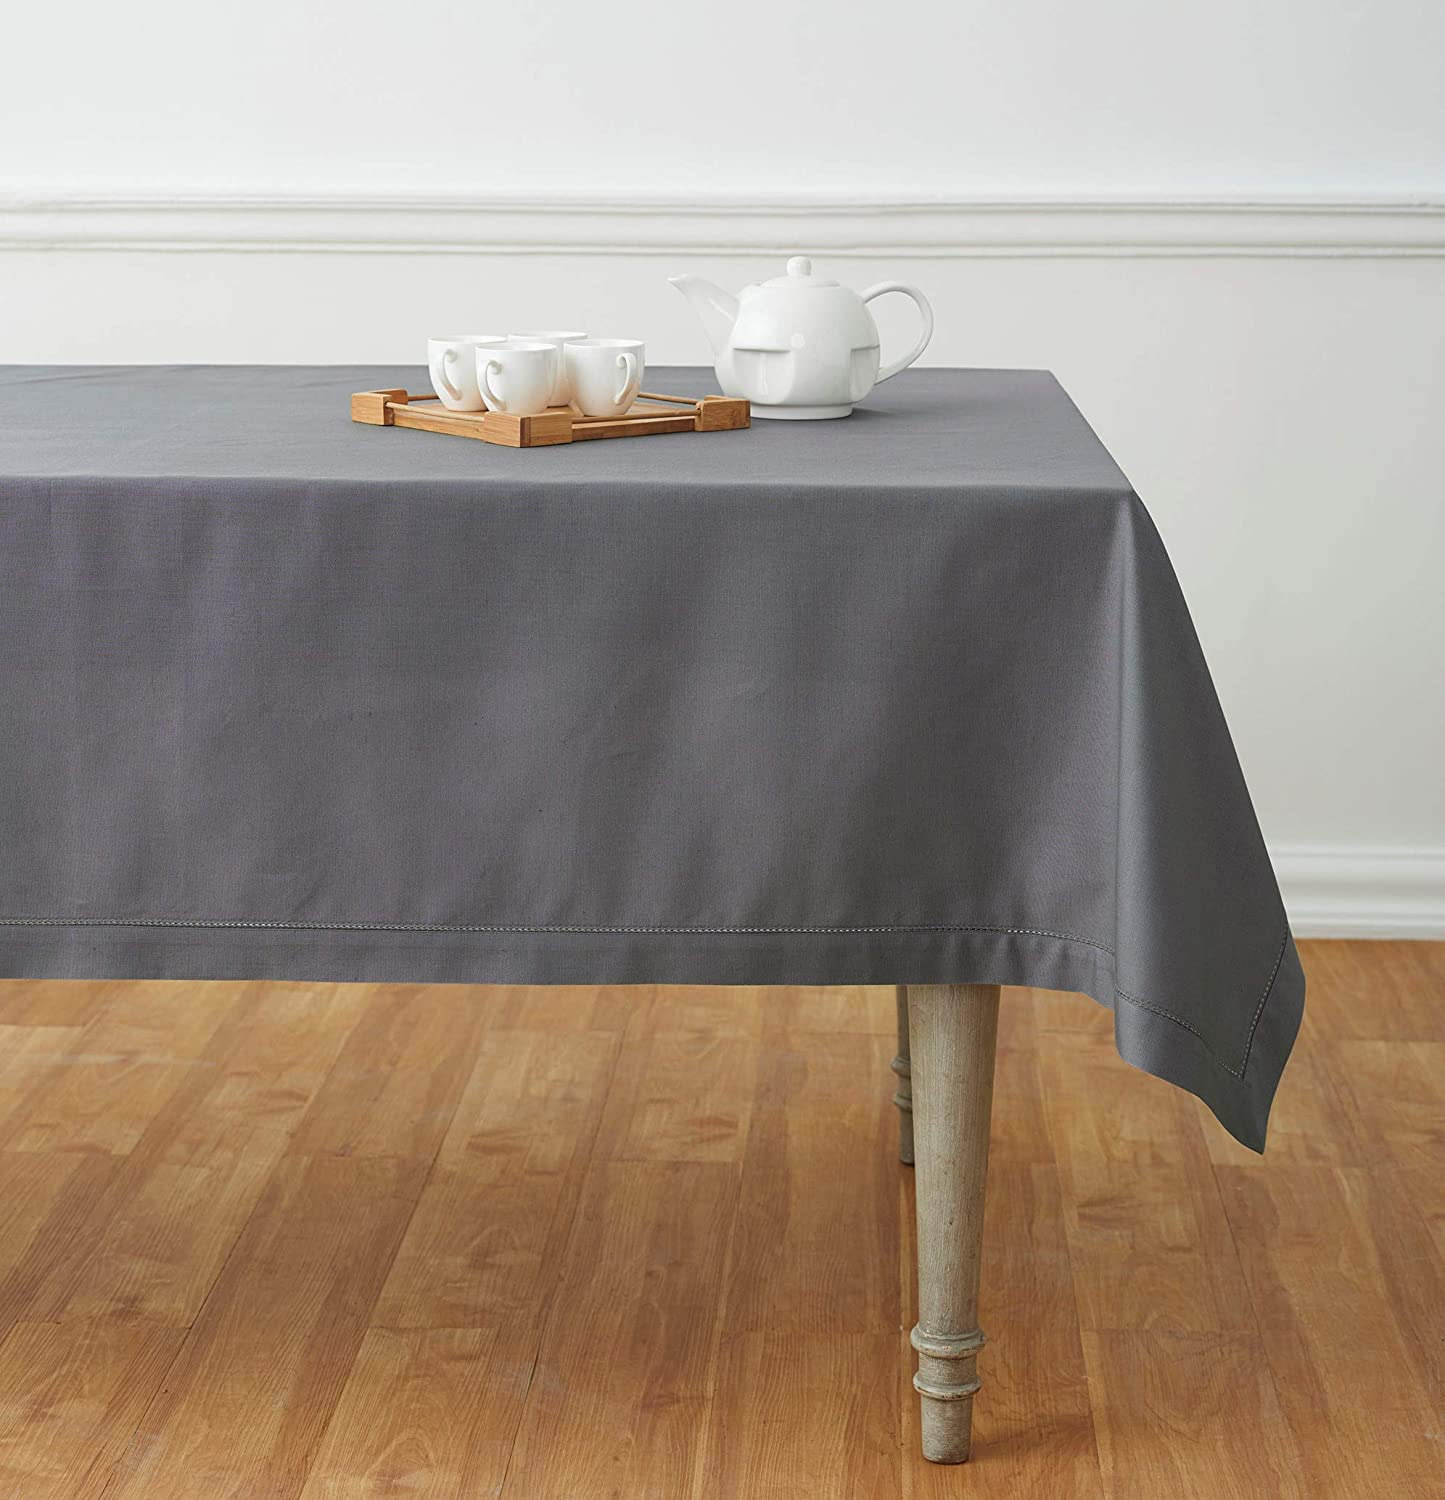 Solino Home Hemstitch Cotton Linen Tablecloth – 58 x 84 Inch, Natural Fabric Machine Washable - White Tablecloth for Indoor and Outdoor use: Home & Kitchen